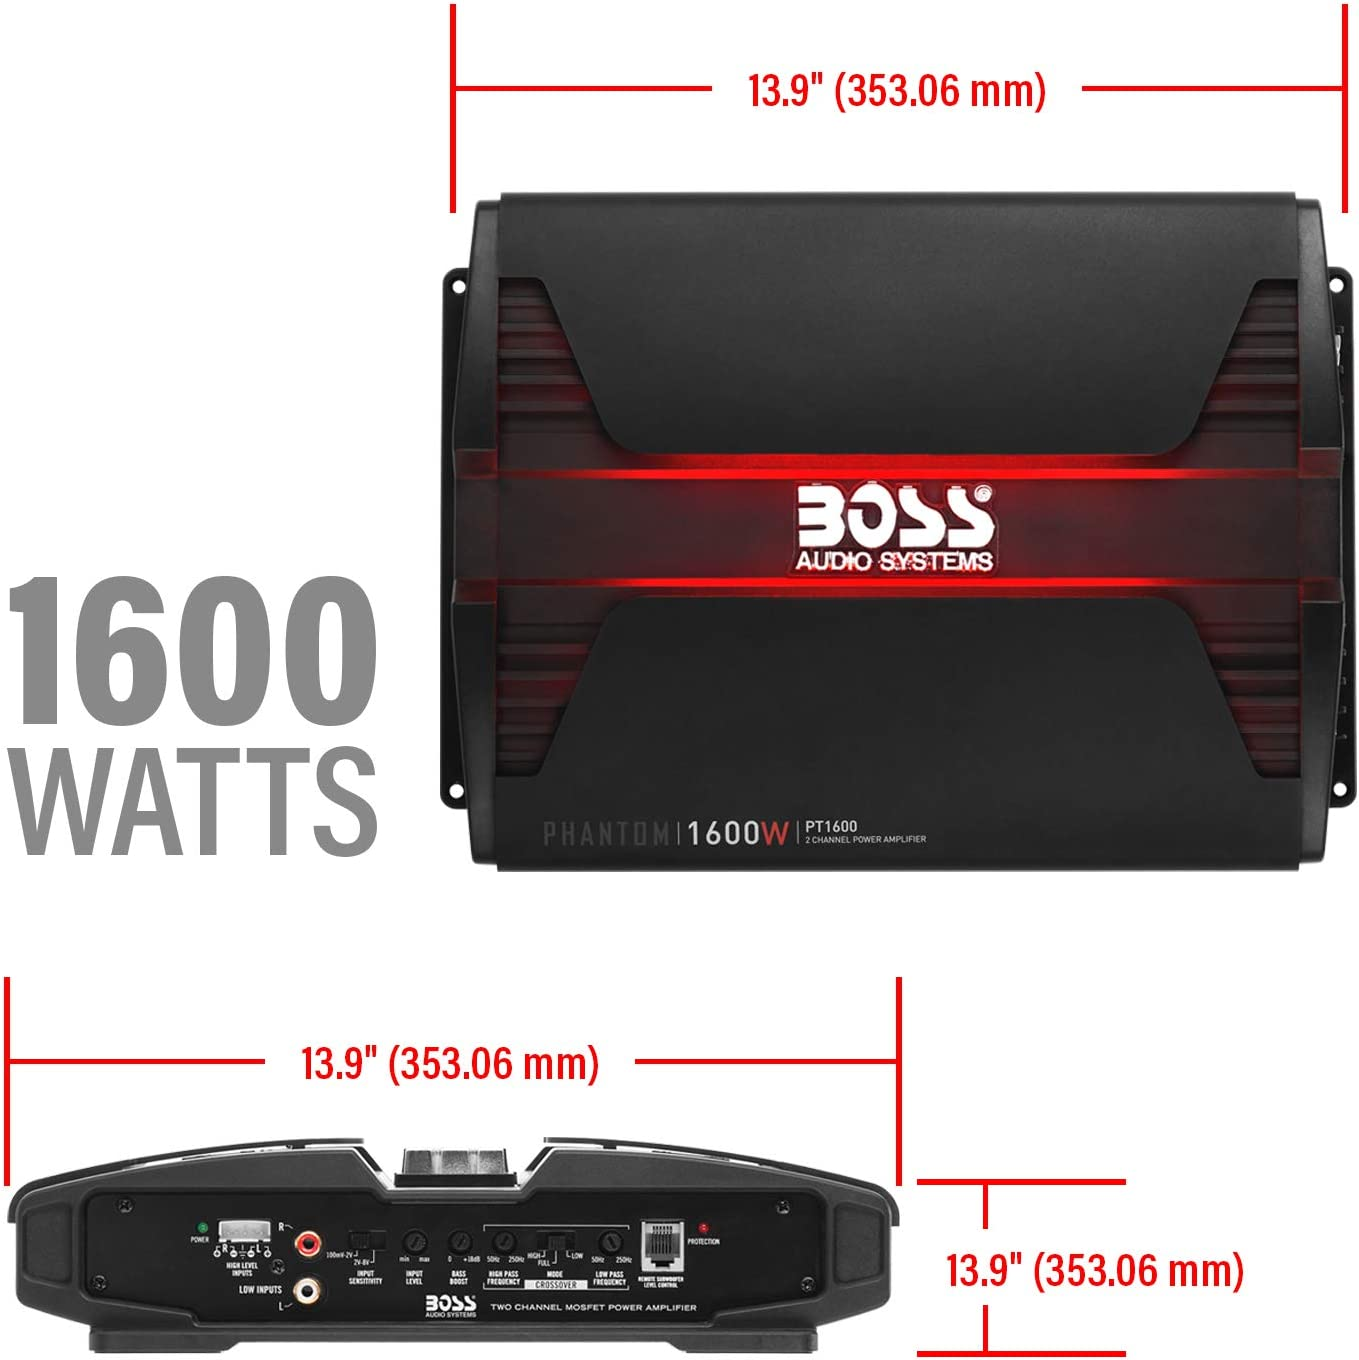 Class A//B Mosfet Power Supply 1000 Watts Bridgeable Full Range 2-8 Ohm Stable BOSS Audio Systems PT1000 2 Channel Car Amplifier